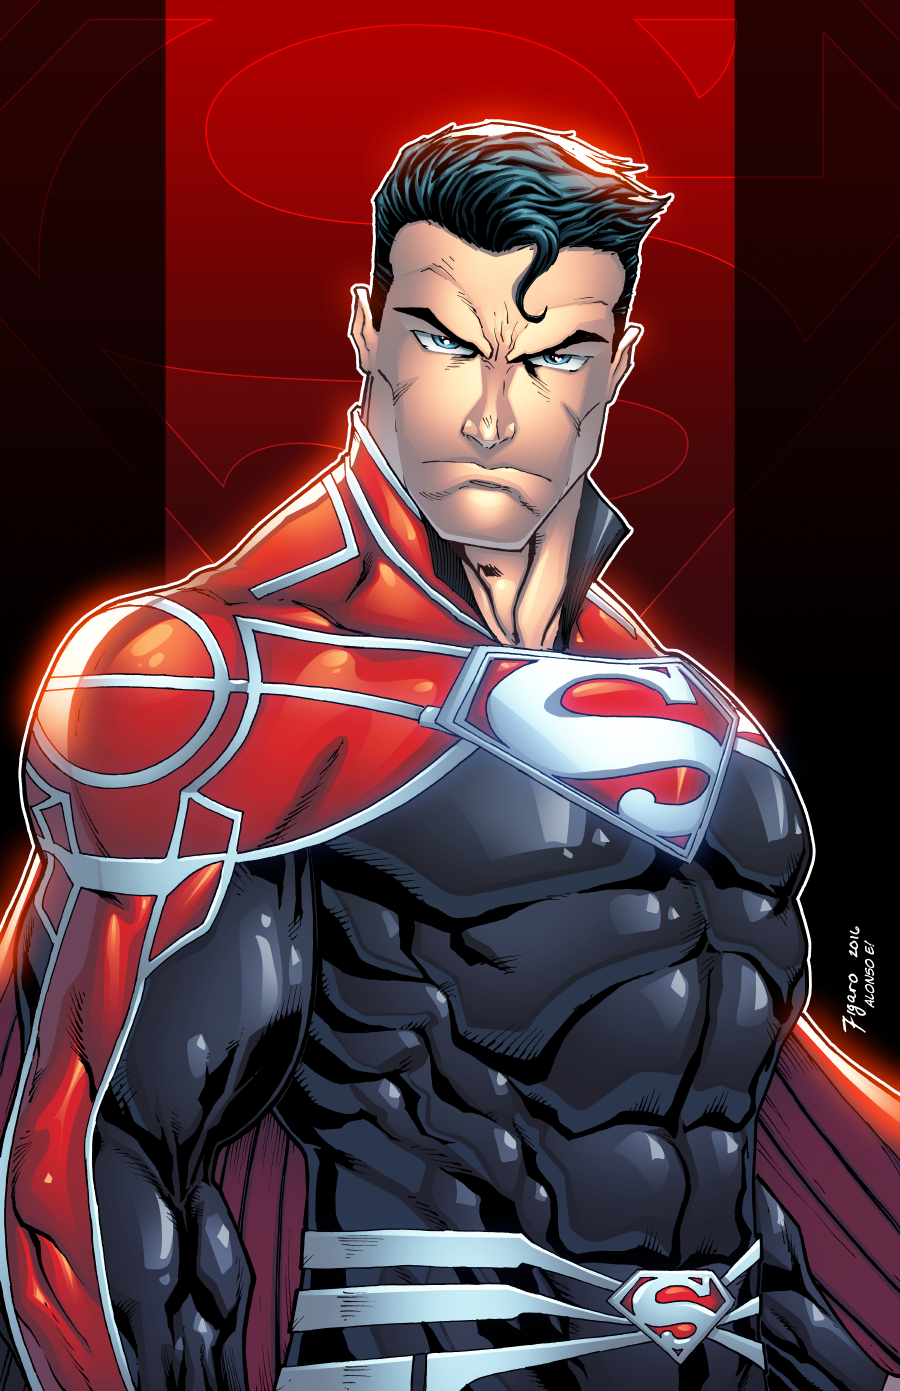 Pin by ANdRe tHa rOcK WIlliAmS on KRYPTON Superman art